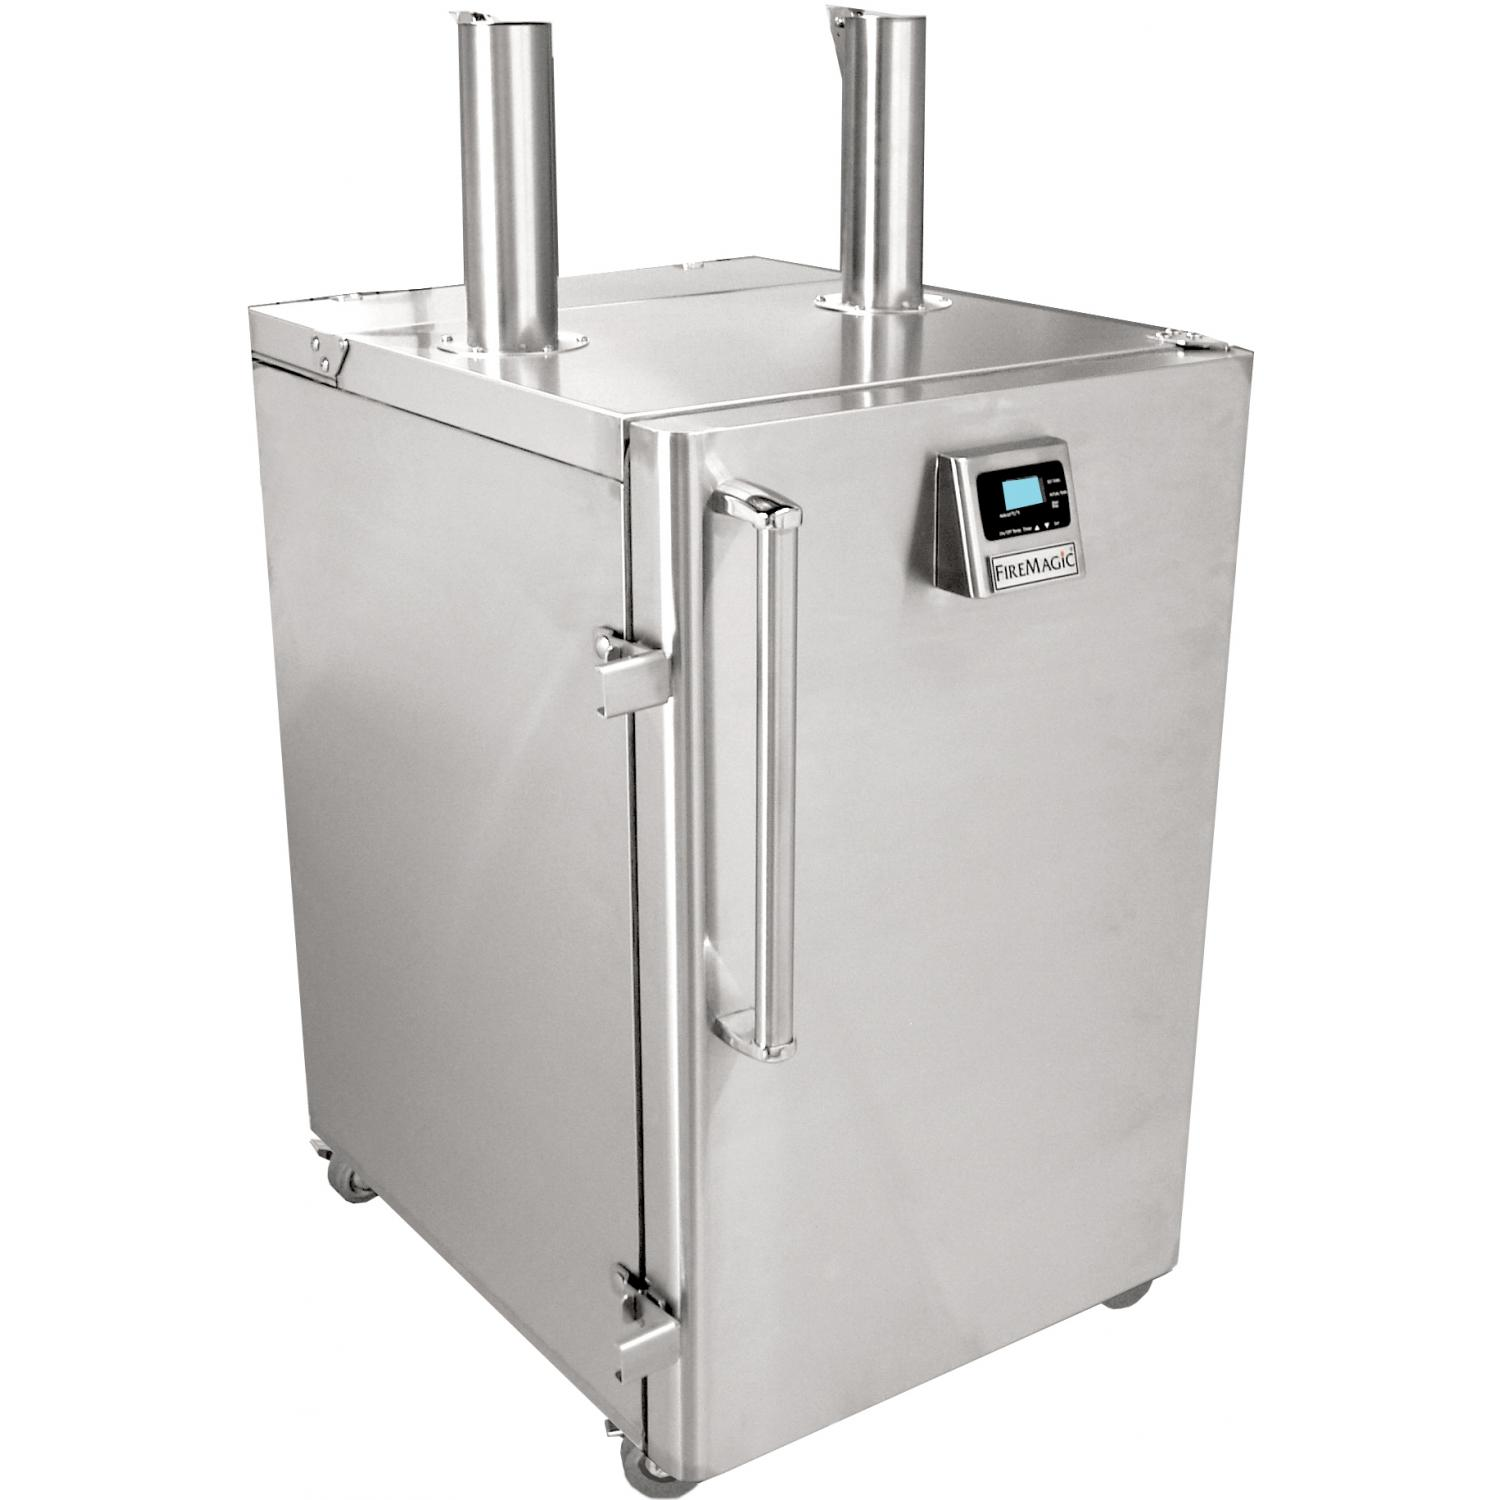 Fire Magic Smoker 24s-SM Stainless Steel Meat Smoker